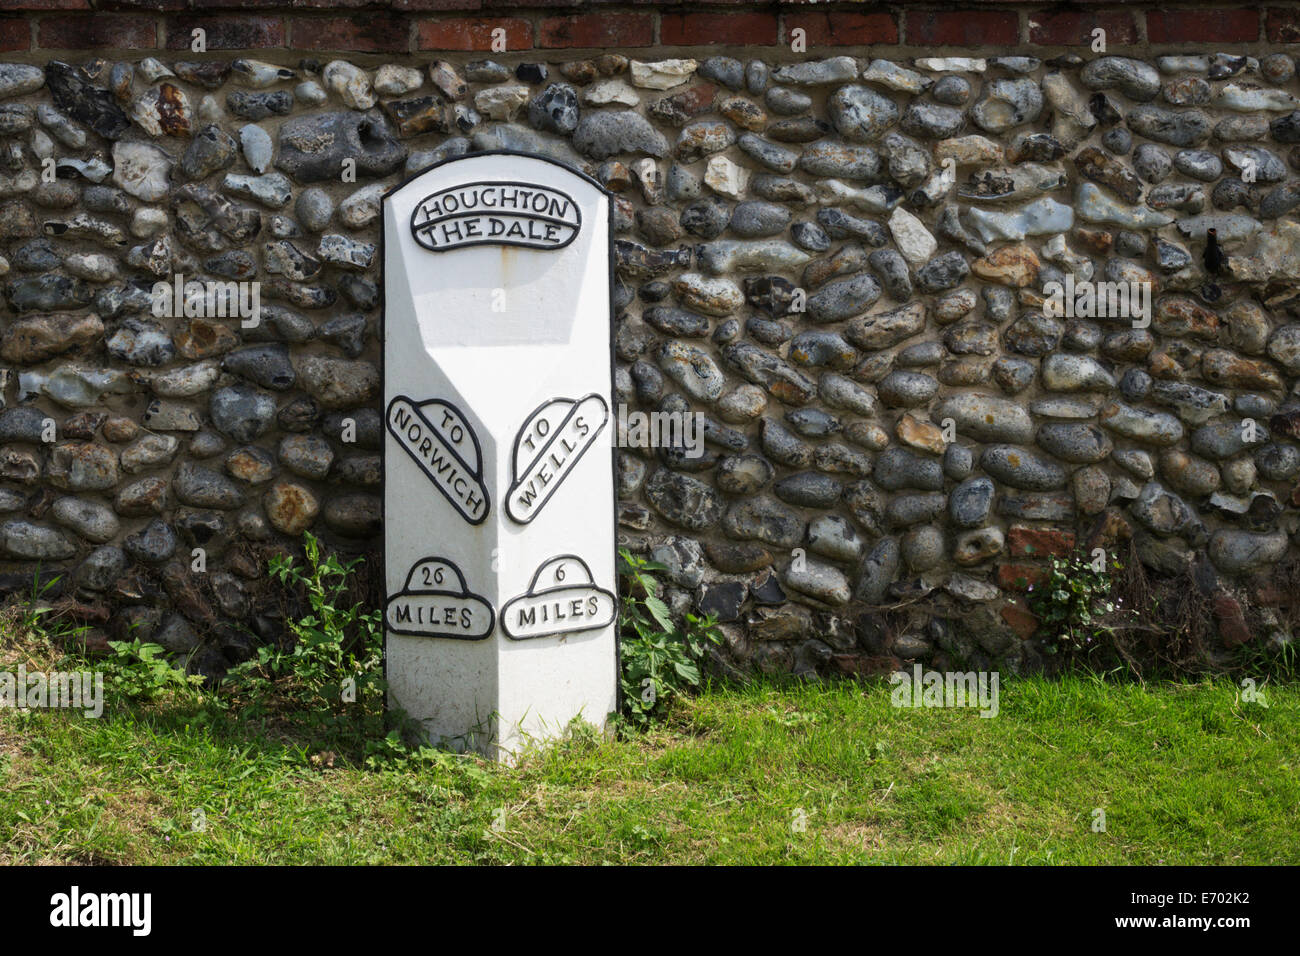 Old milestone at Houghton the Dale, in Norfolk, England. - Stock Image